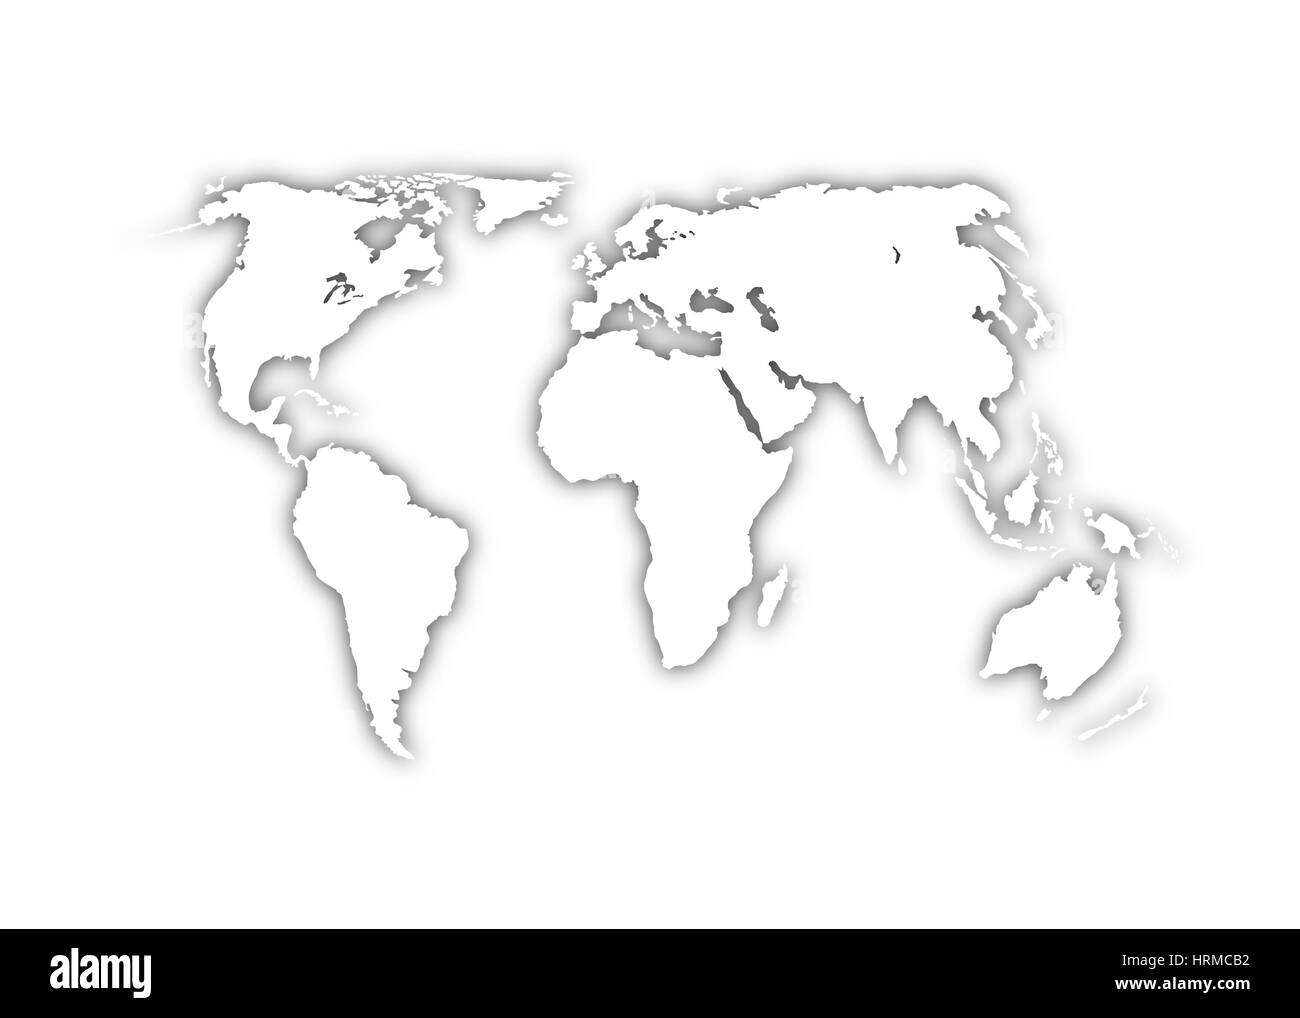 World map on grey background stock photo royalty free image world map on grey background gumiabroncs Image collections